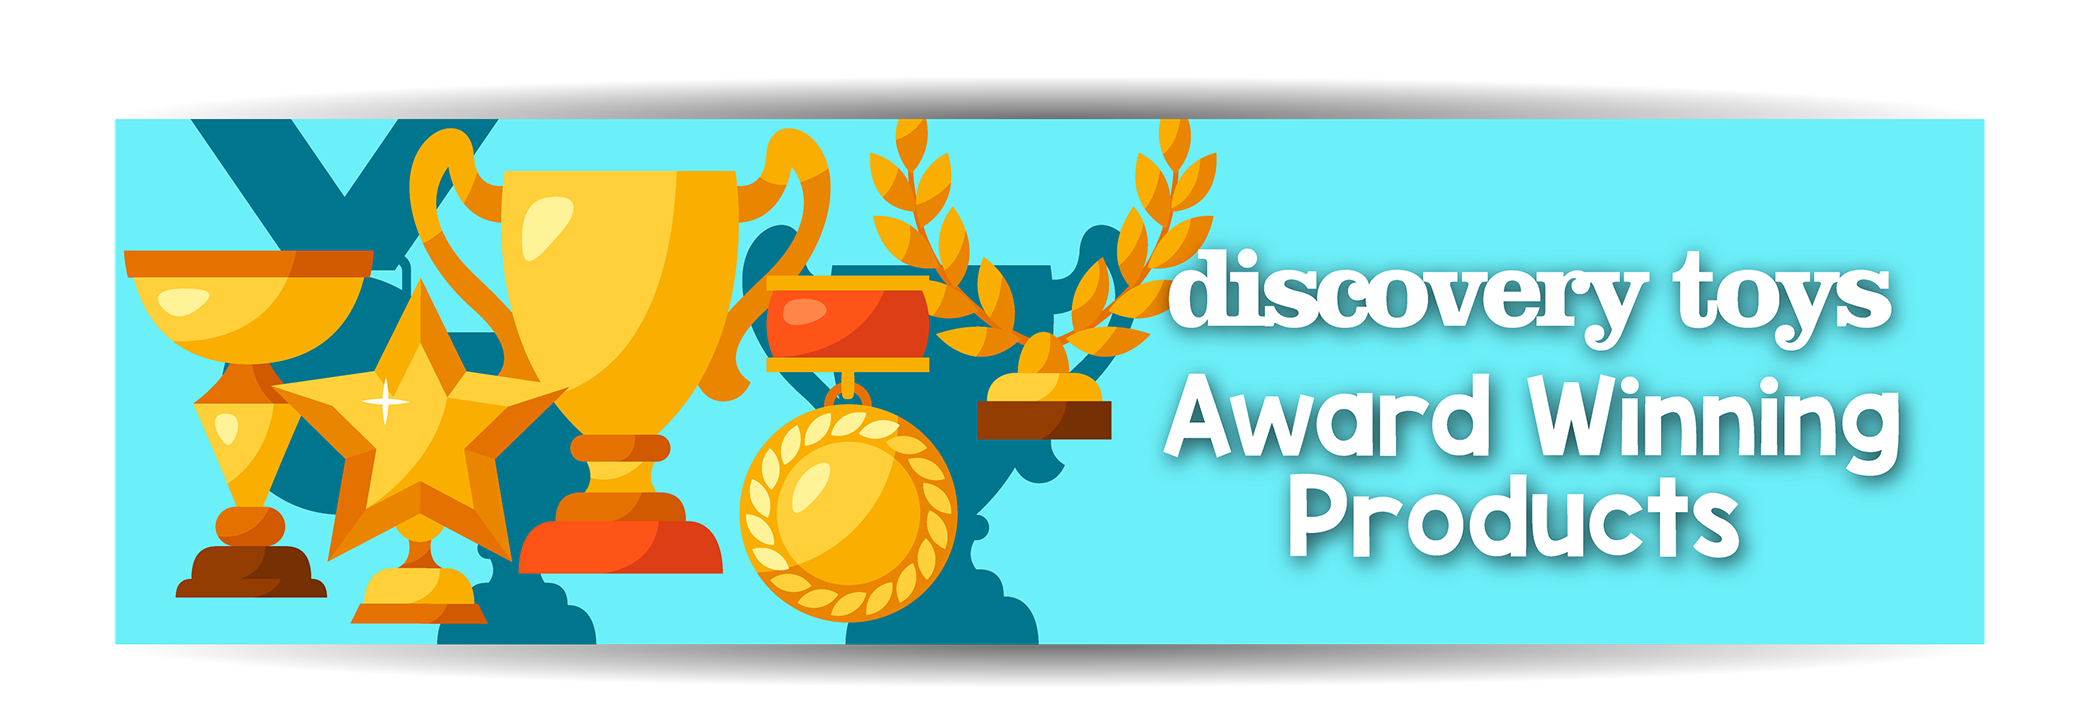 award winning products-01